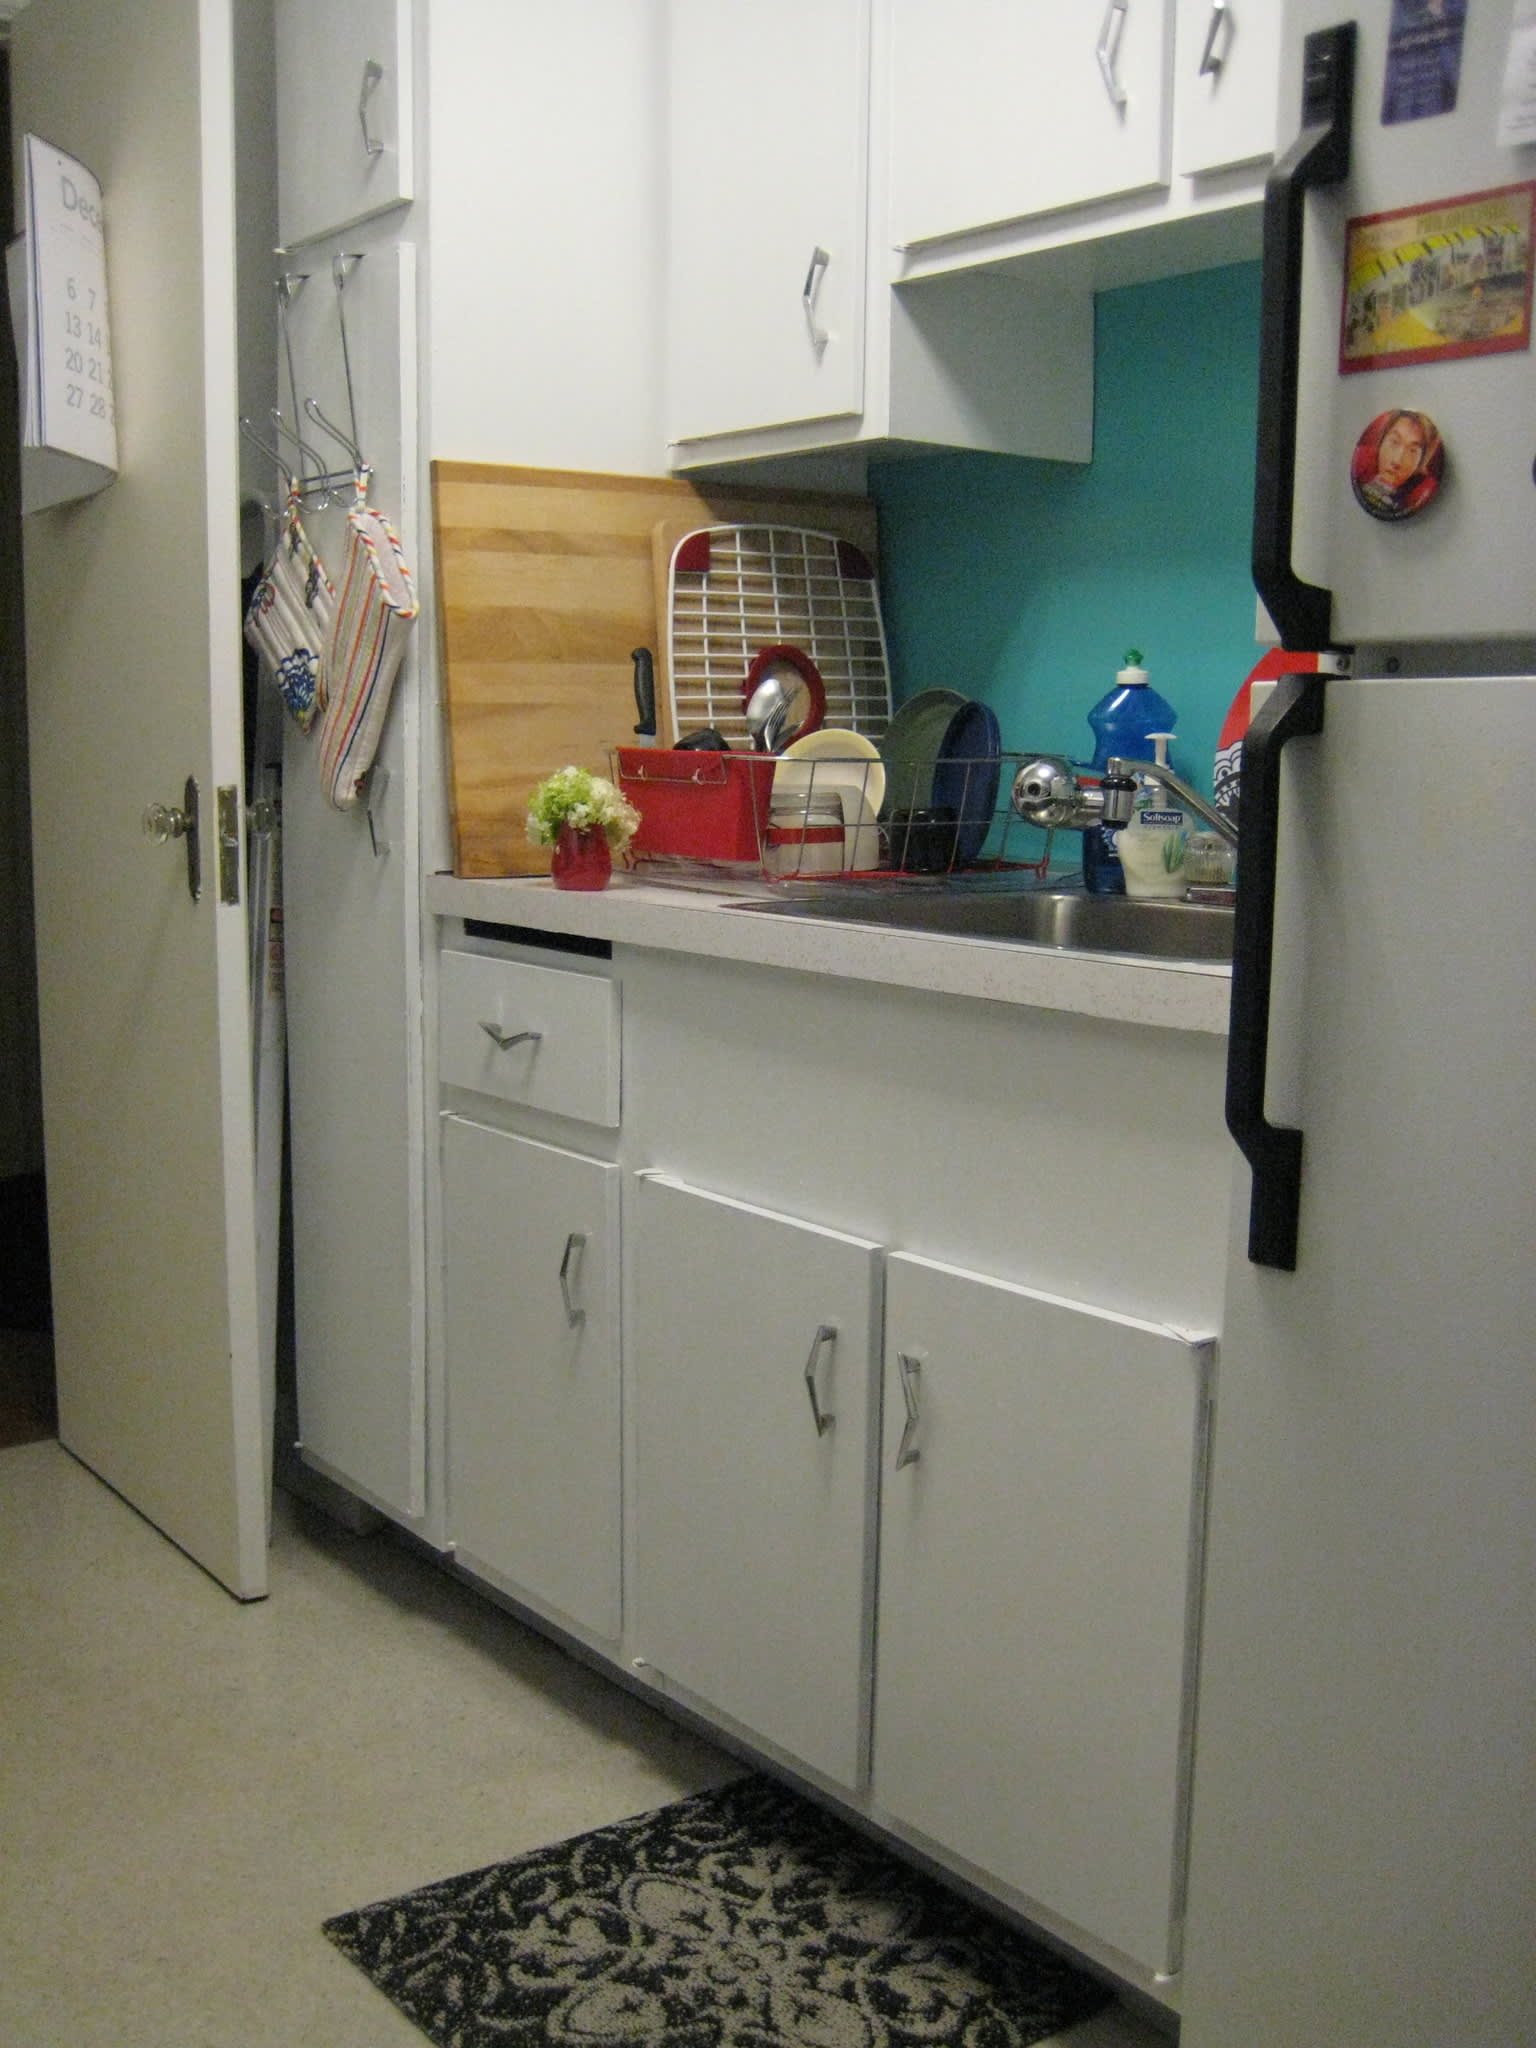 How To Paint Plastic Laminate Kitchen Cabinets Kathleen's ...